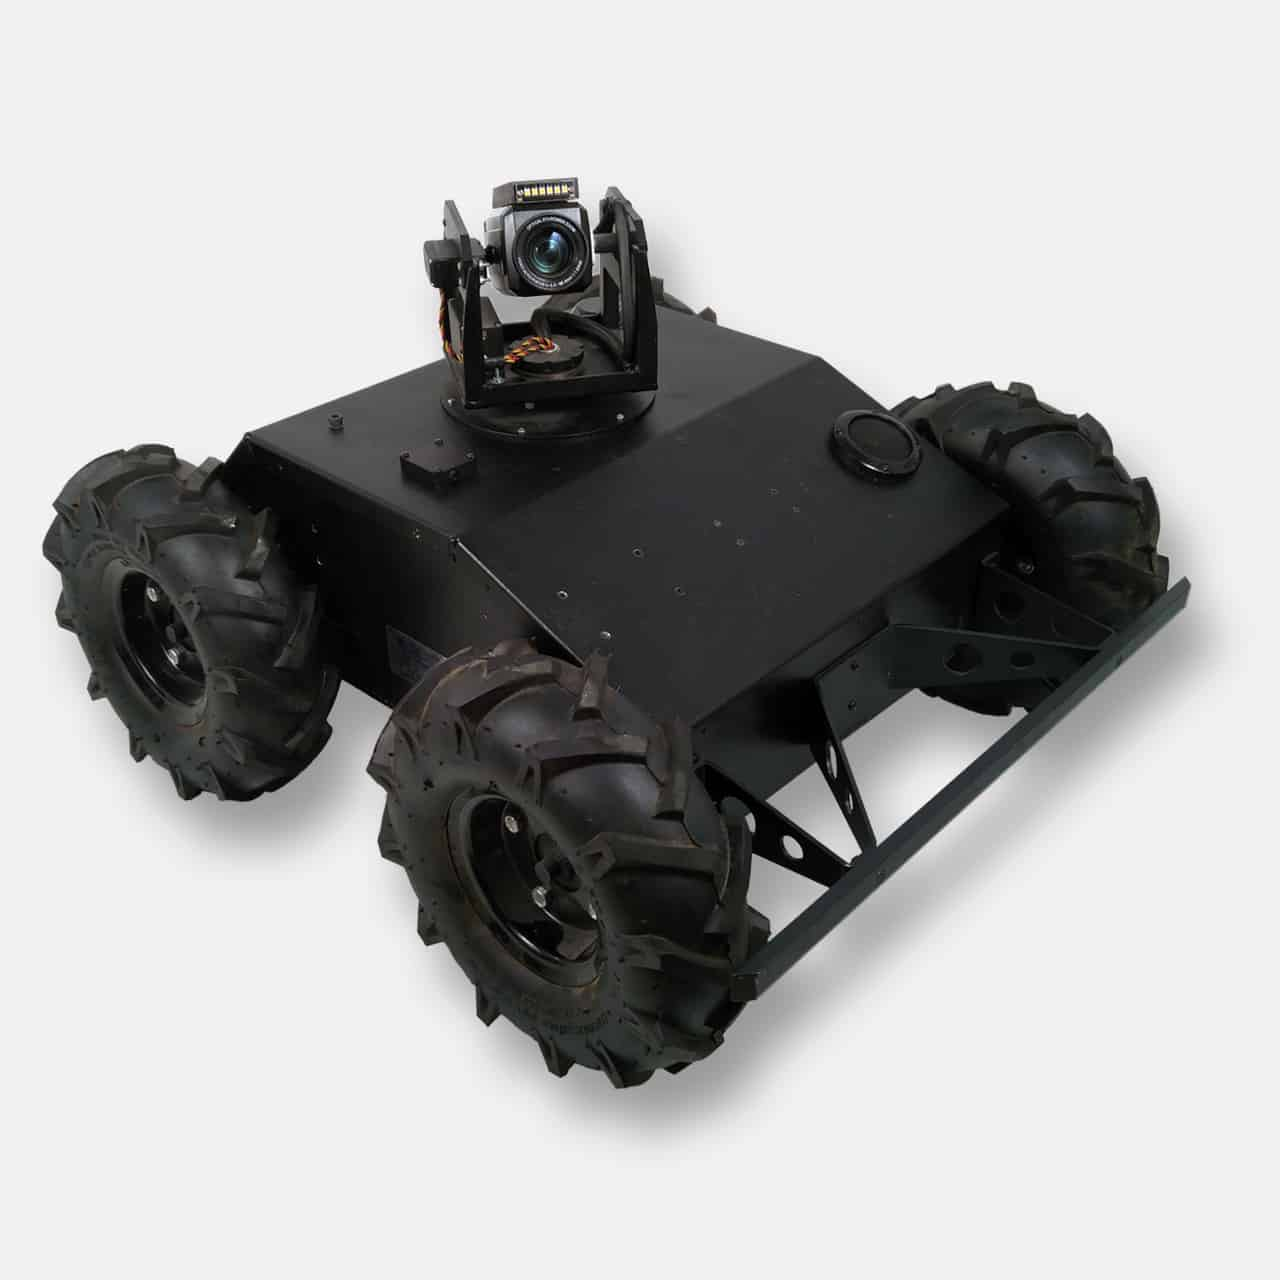 4WD Tactical Robot with Tablet Controller